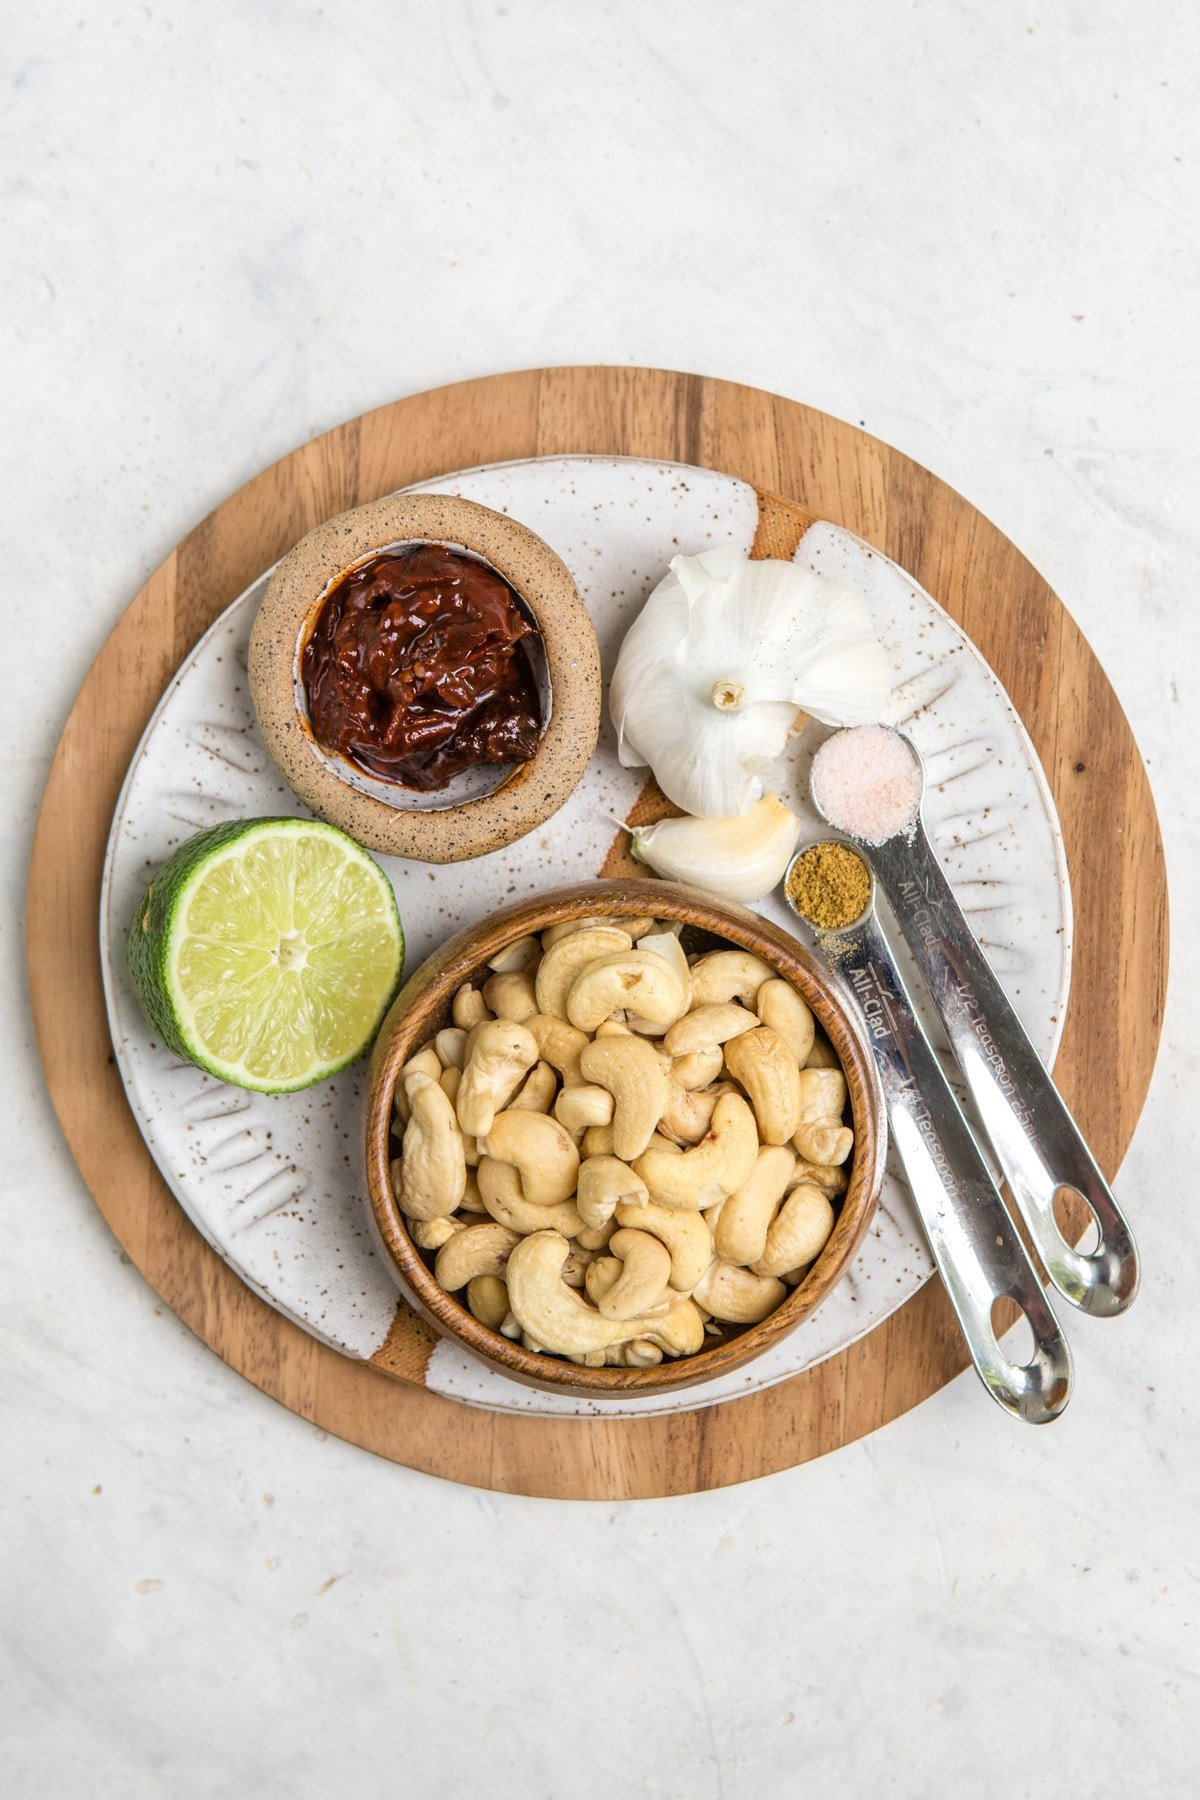 ingredients for chipotle mayo on white plate